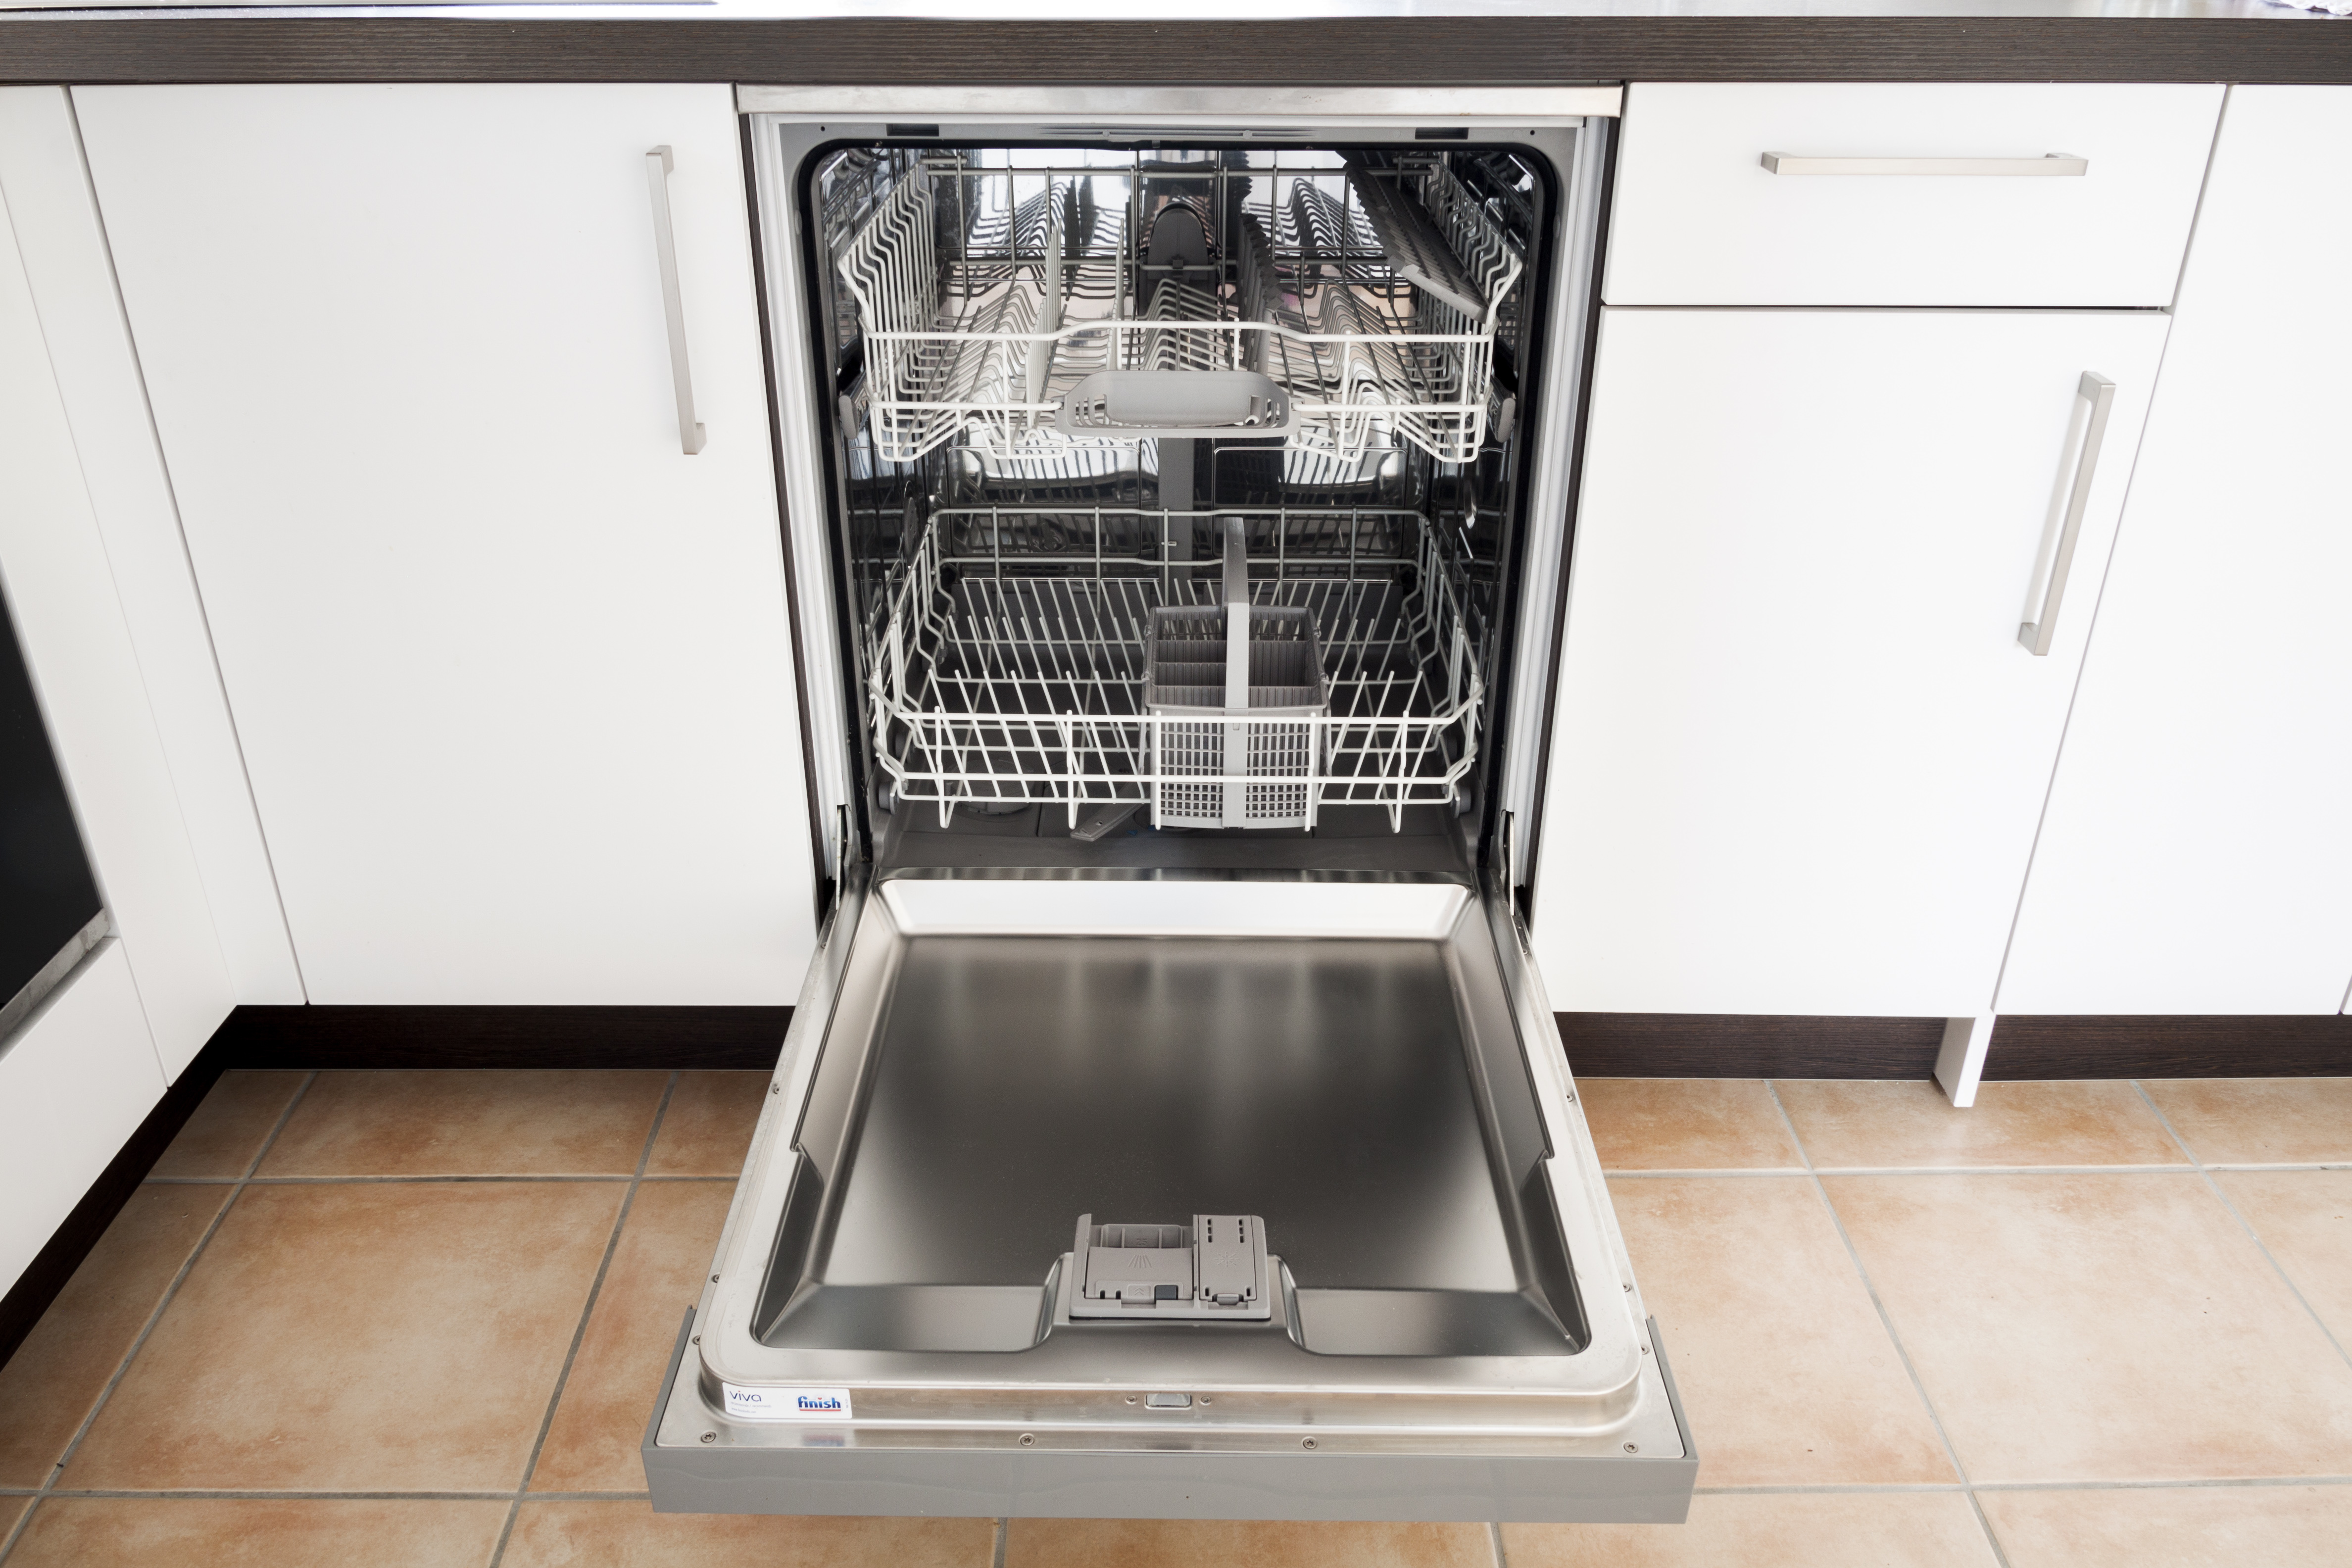 Dishwasher-Not-Filling-Up-With-Water